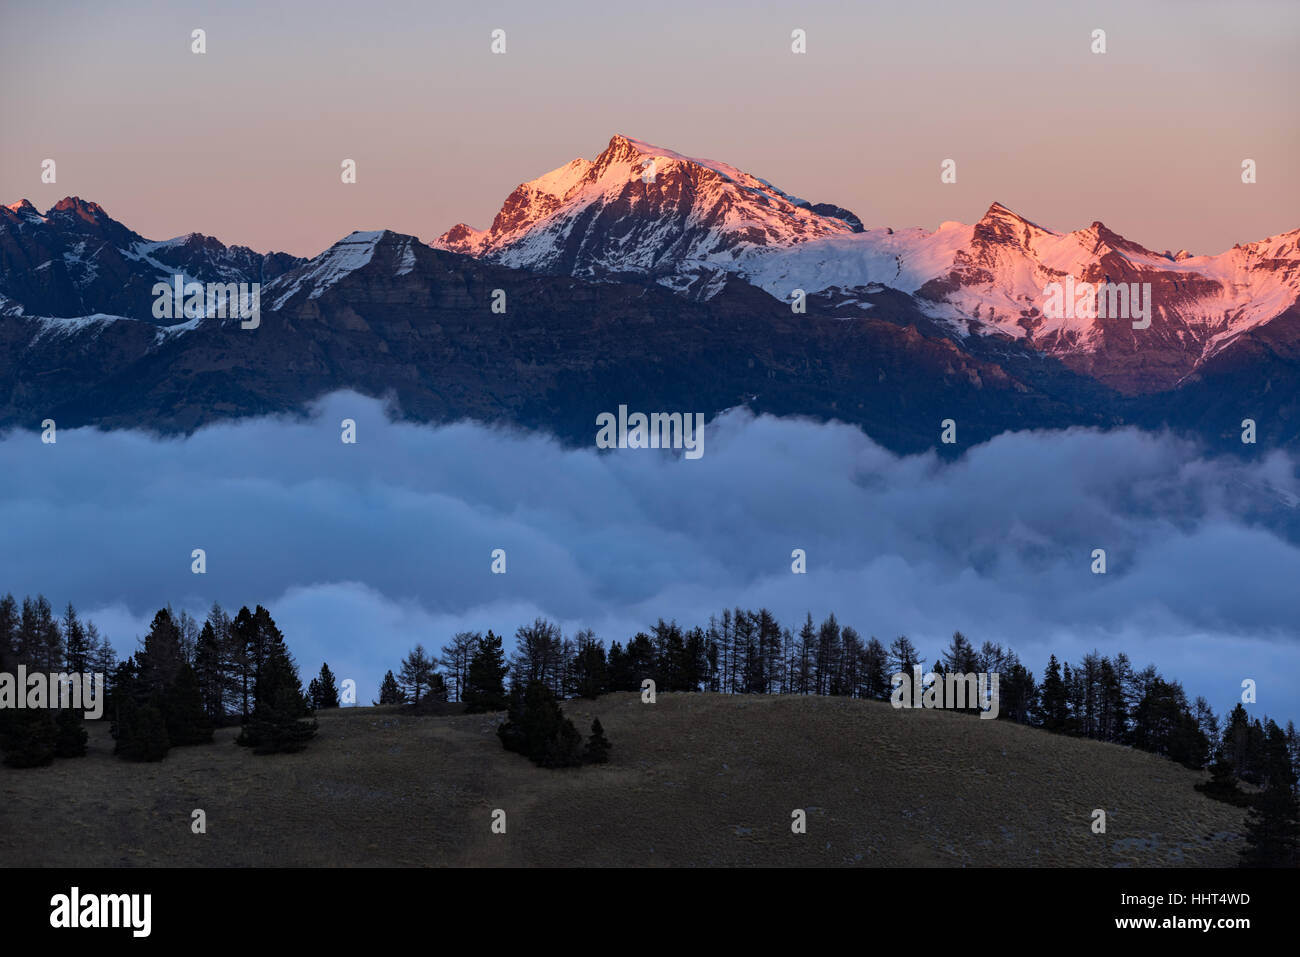 Winter sunset on the Ecrins National Park mountain peaks (Chaillol, Queyrel, Tourond) raising above the clouds. - Stock Image